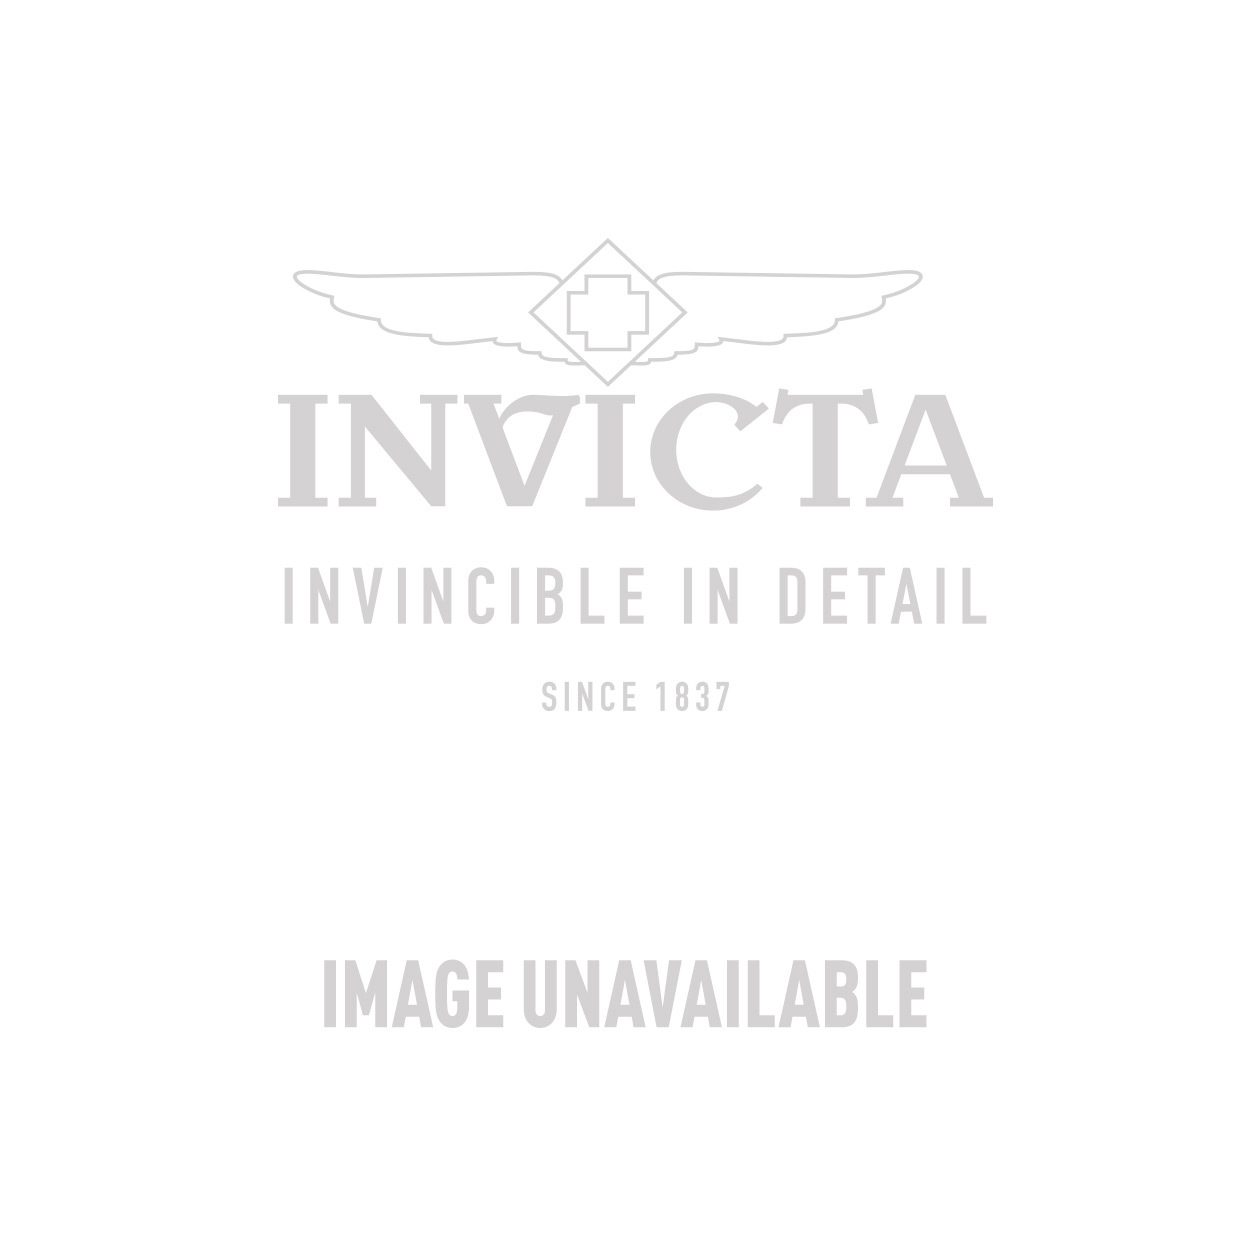 Invicta Signature Swiss Movement Quartz Watch - Black case with Black tone Polyurethane band - Model 7342